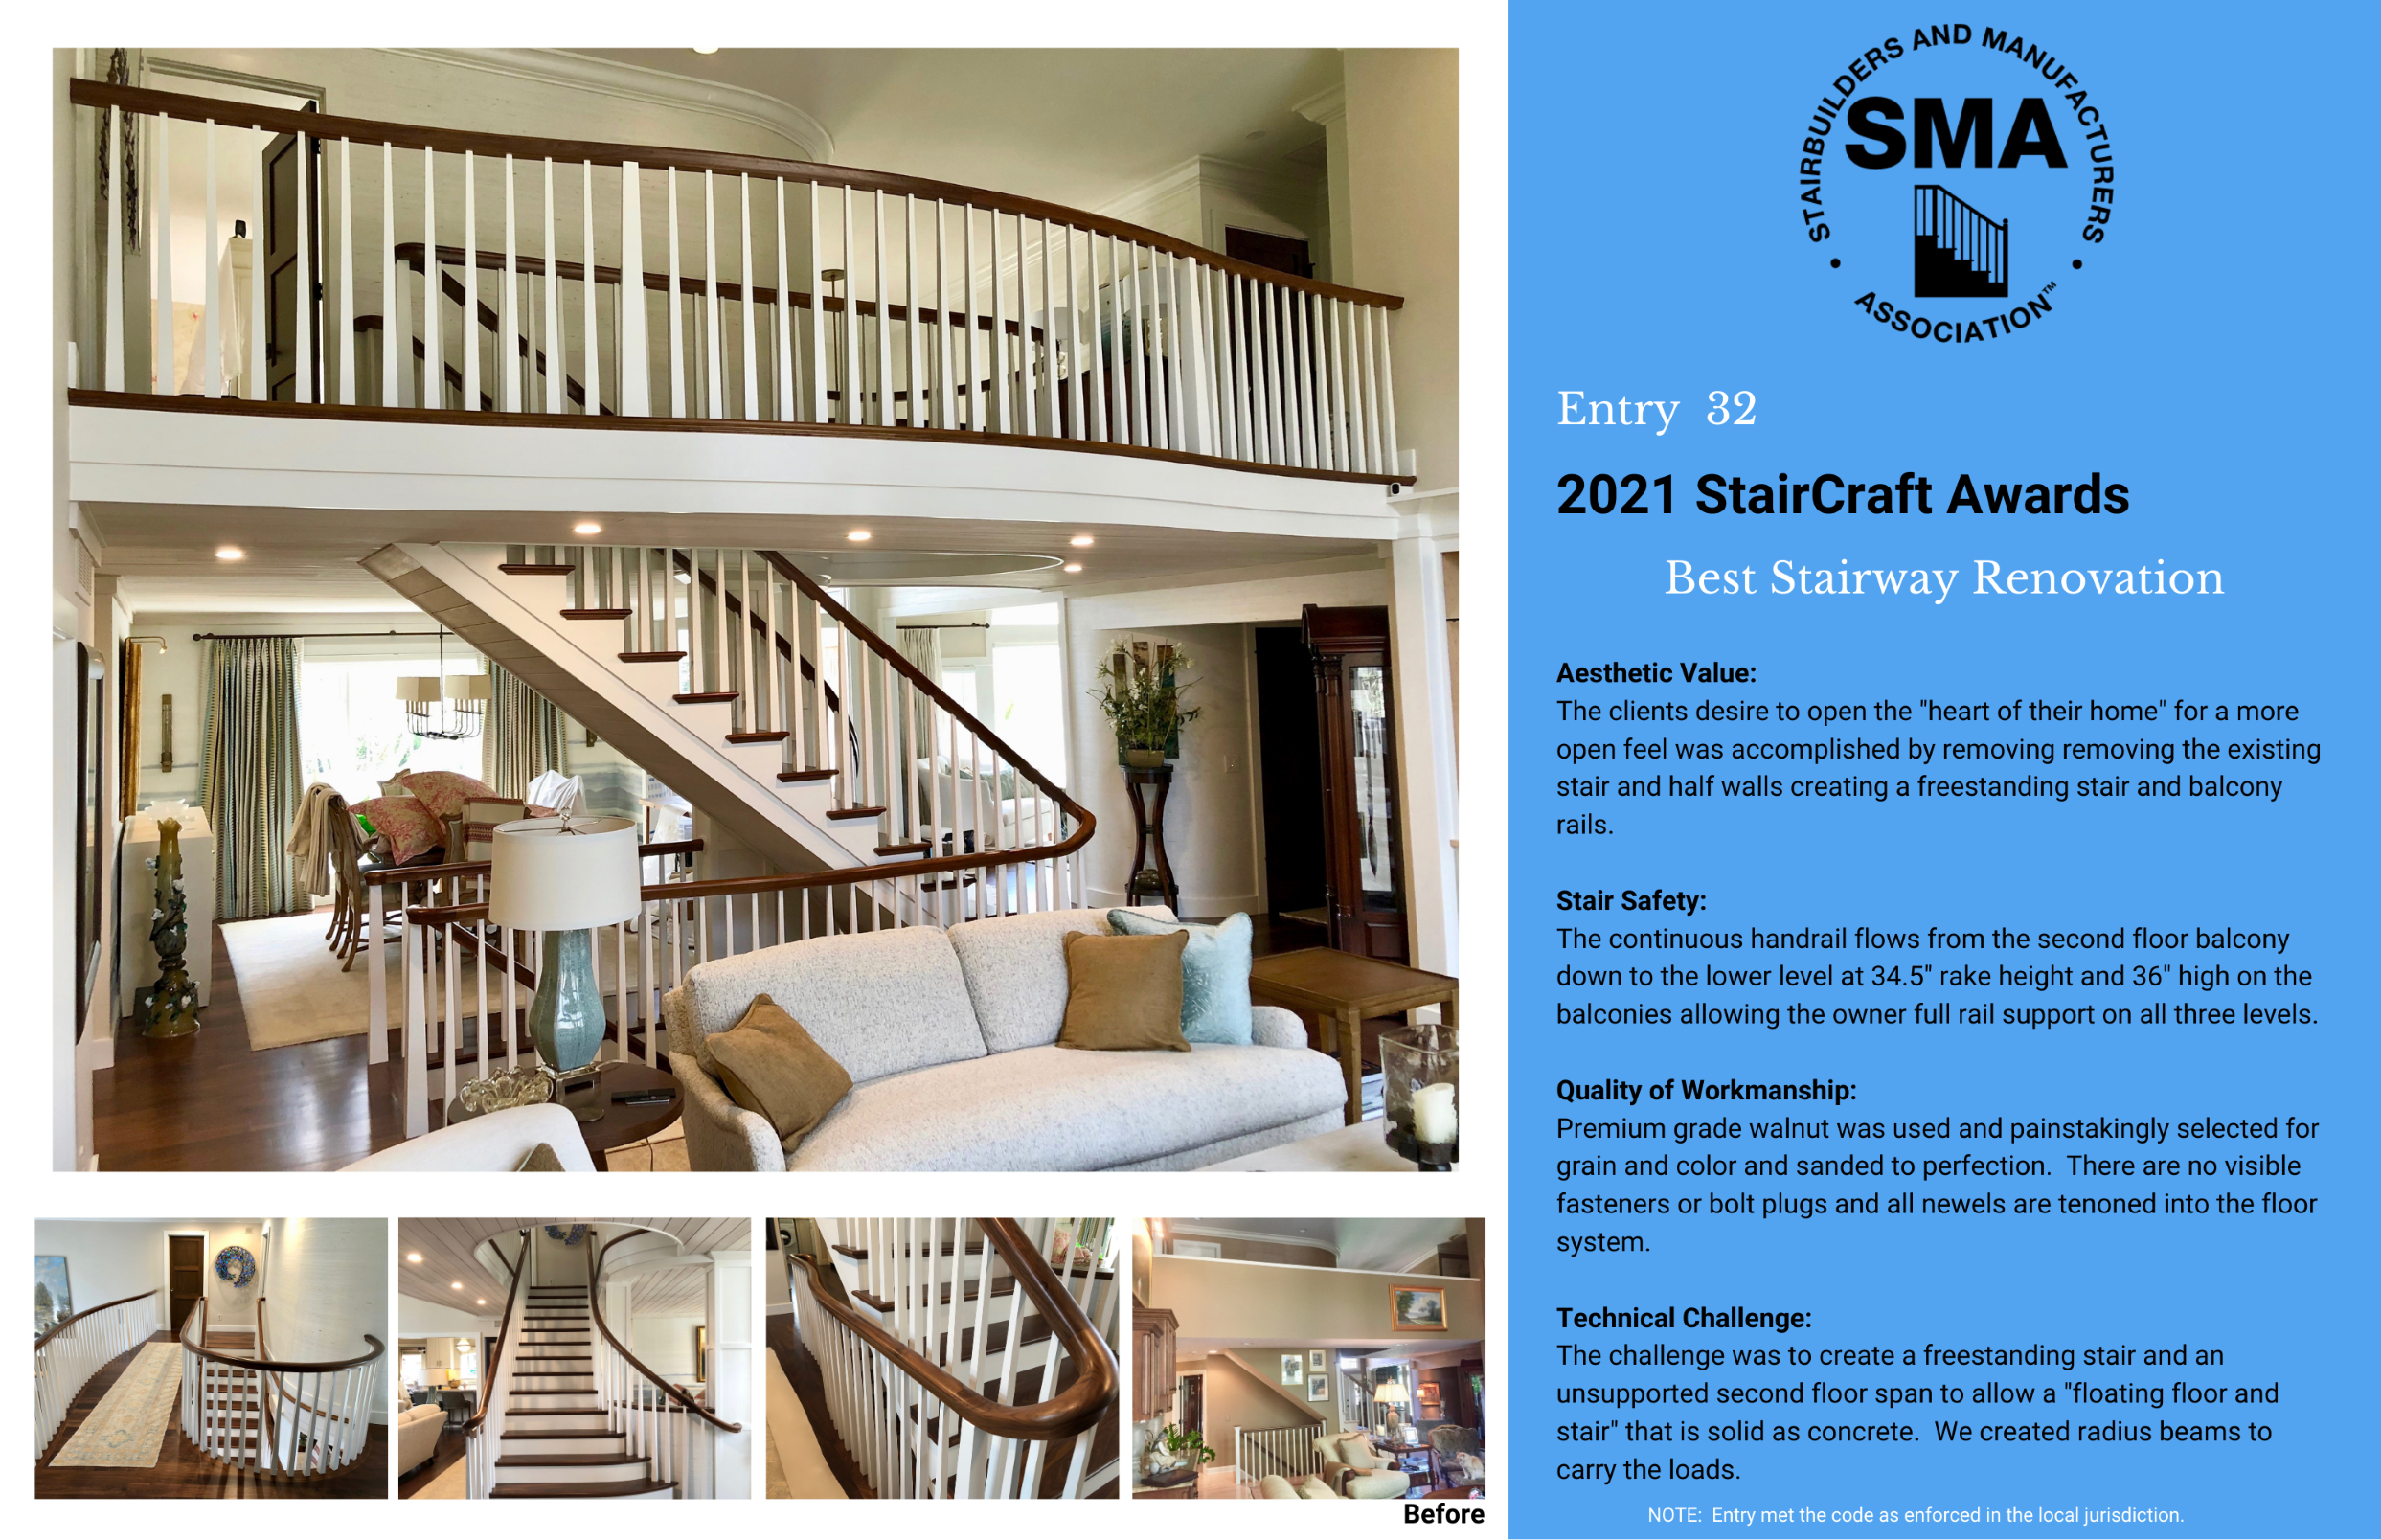 2021 StairCraft Awards Entry 32